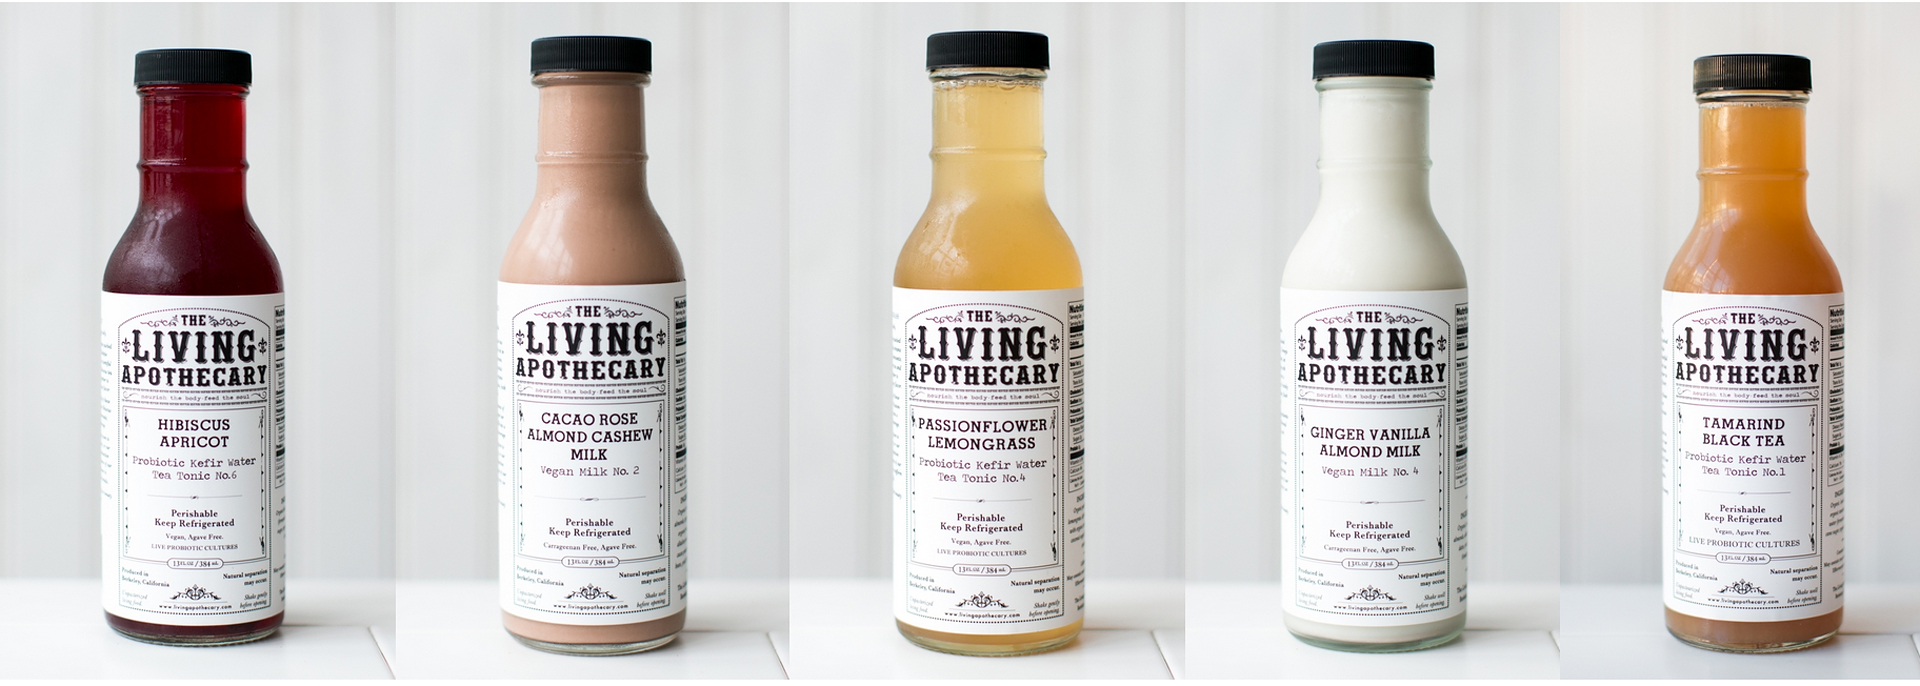 The Living Apothecary is known for its flavored almond milks and pro-biotic tonics.